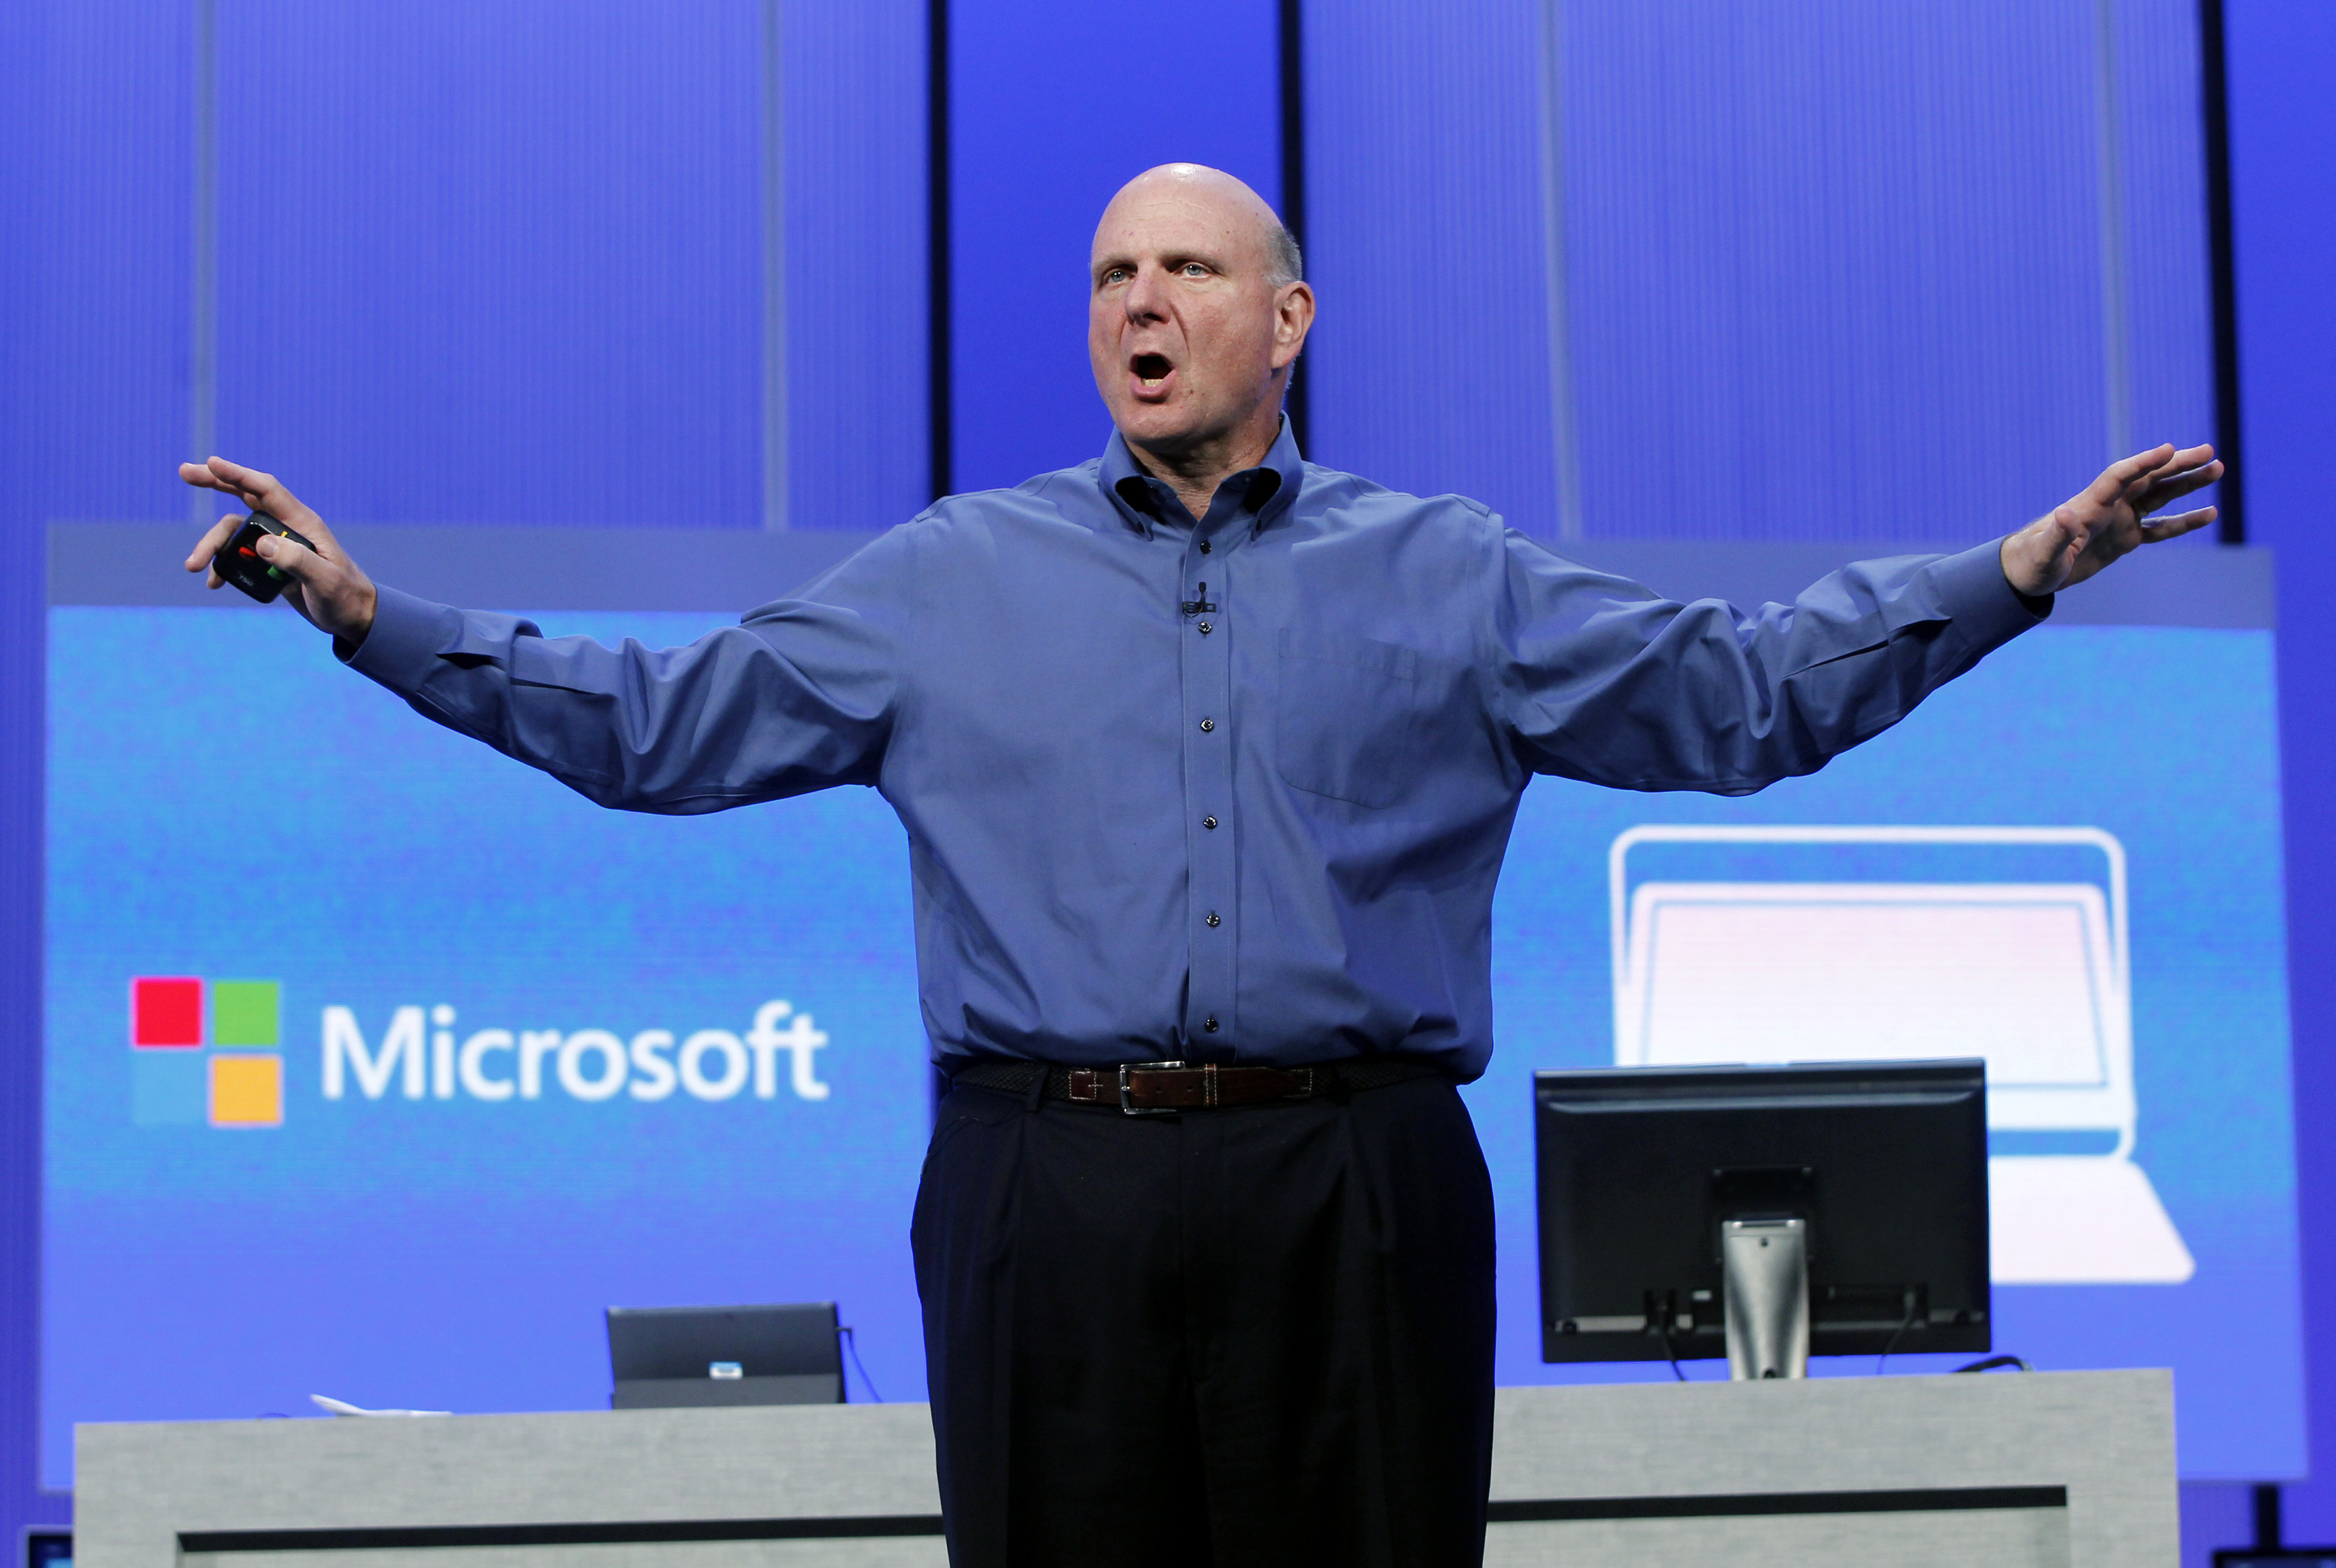 Microsoft CEO Steve Ballmer gestures during his keynote address at the Microsoft